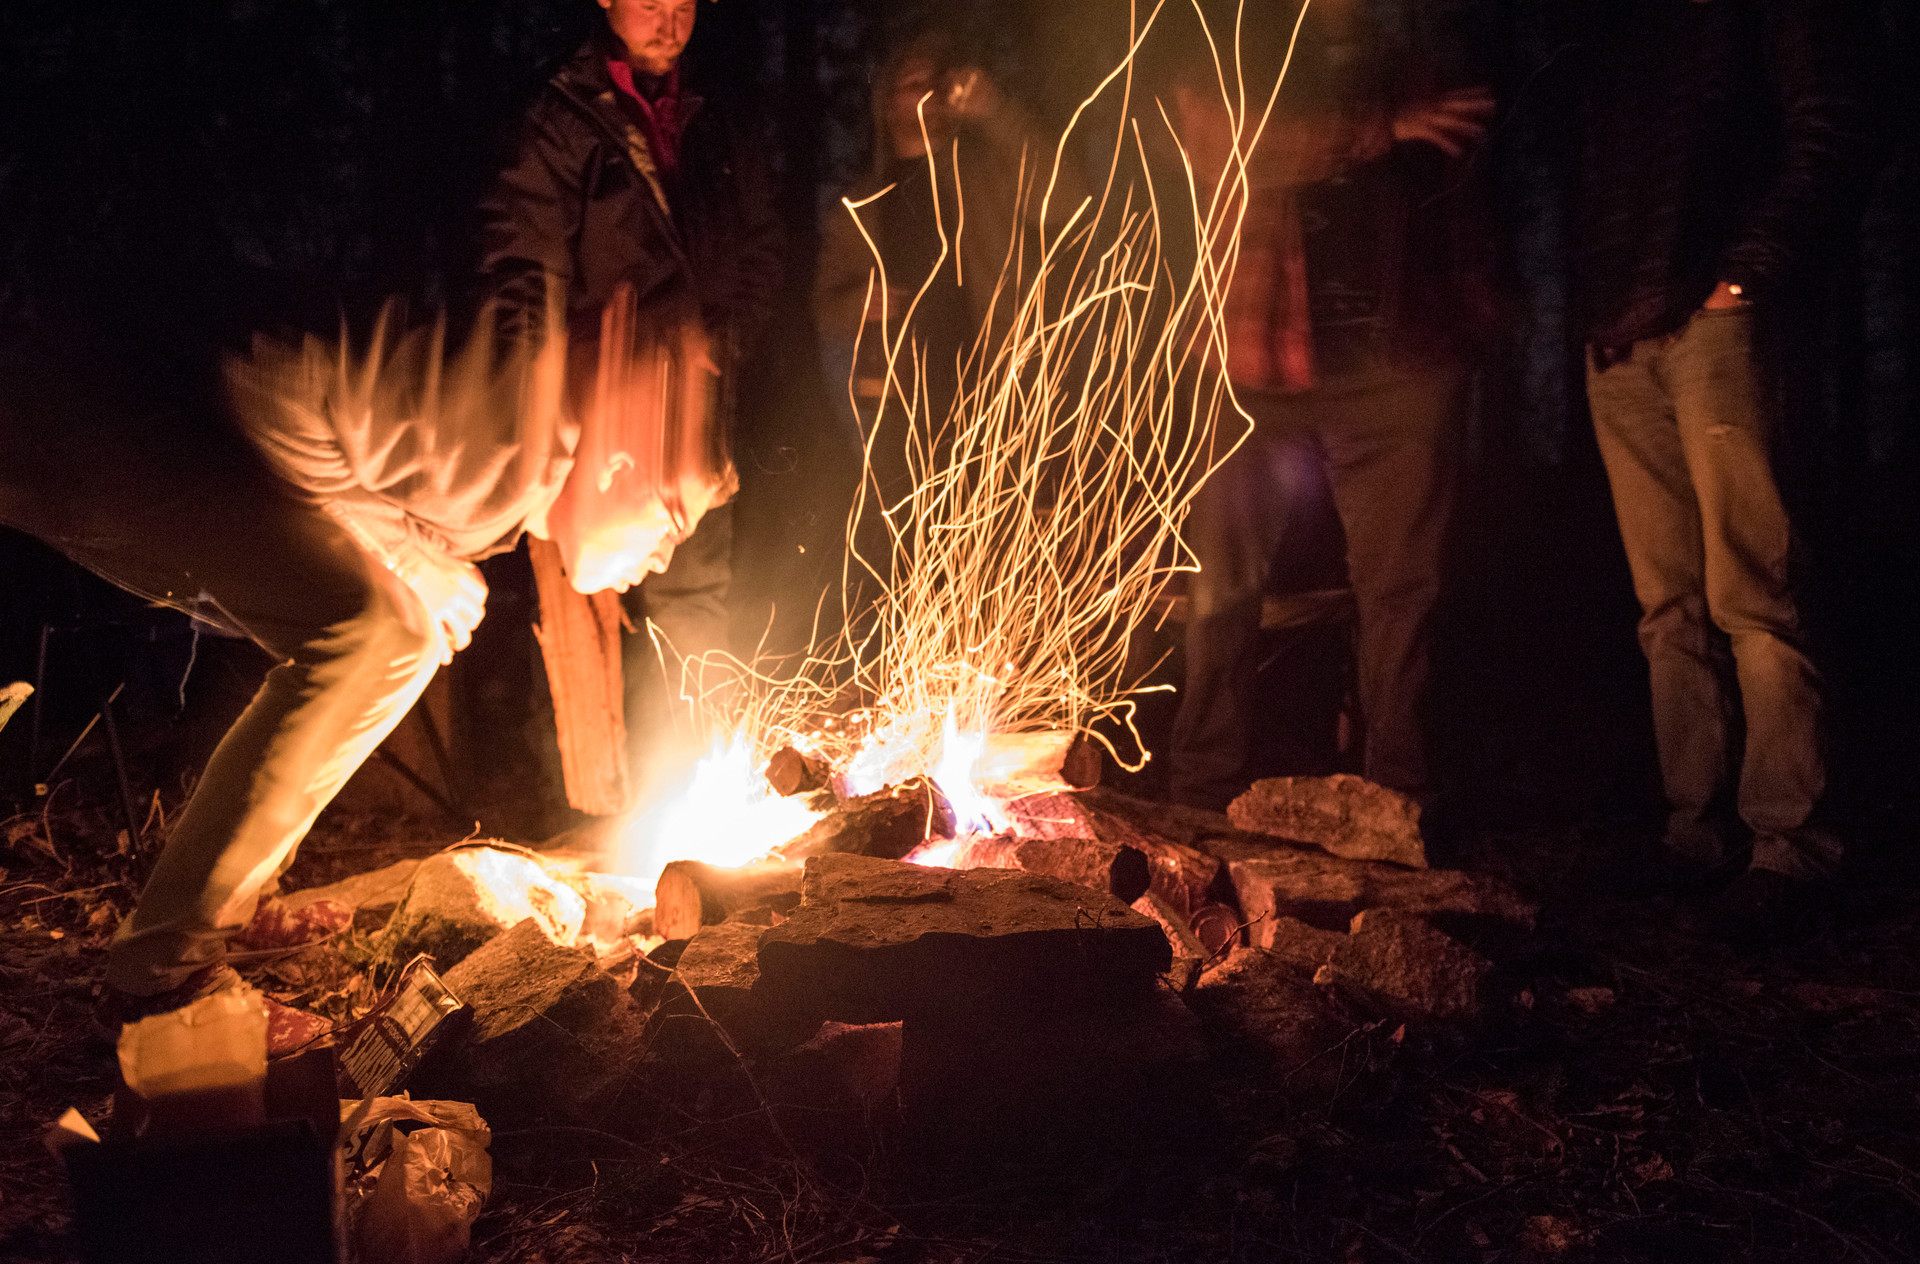 Matt McWilliams blows on the fire to stoke the flames in the stand of woods on the Meyer Dairy Farm with Troyer and some of his other firends from his hometown, Waterford, Pa. on December 5, 2015. The group came down to State College to visit Troyer at his tent in the woods on one of his last weekends living on the farm.